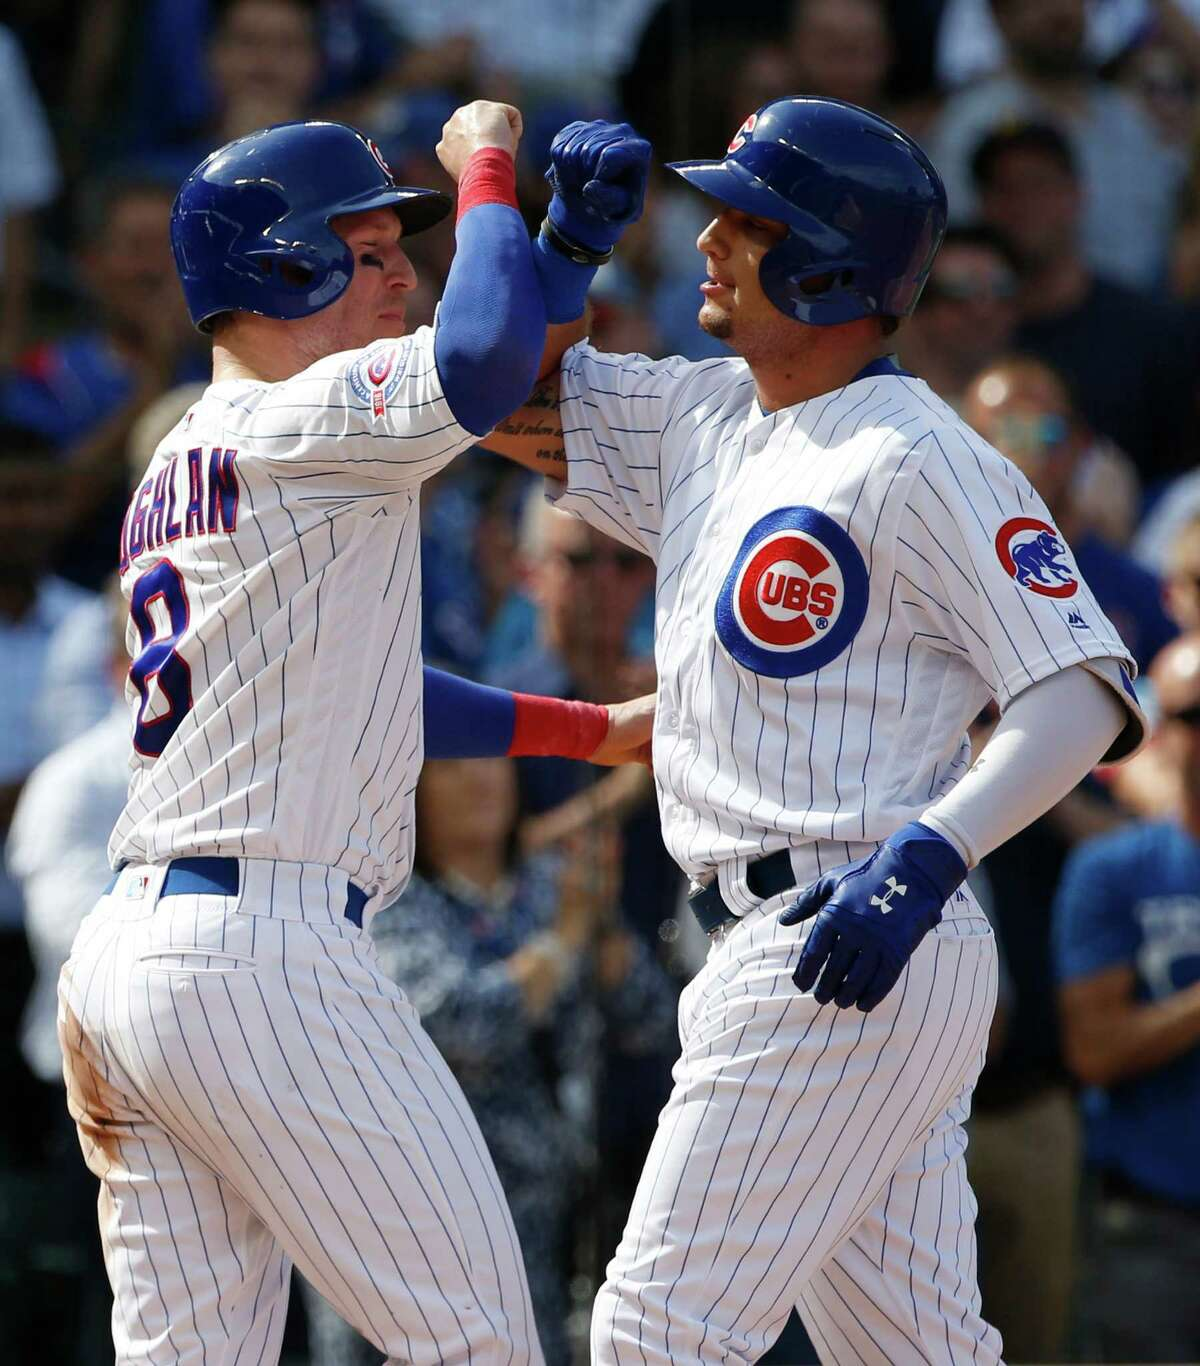 Chicago Cubs' Albert Almora Jr., right, celebrates with Chris Coghlan after hitting a two-run home run during the fifth inning of a baseball game against the Milwaukee Brewers Friday, Sept. 16, 2016, in Chicago. (AP Photo/Nam Y. Huh) ORG XMIT: CXC117